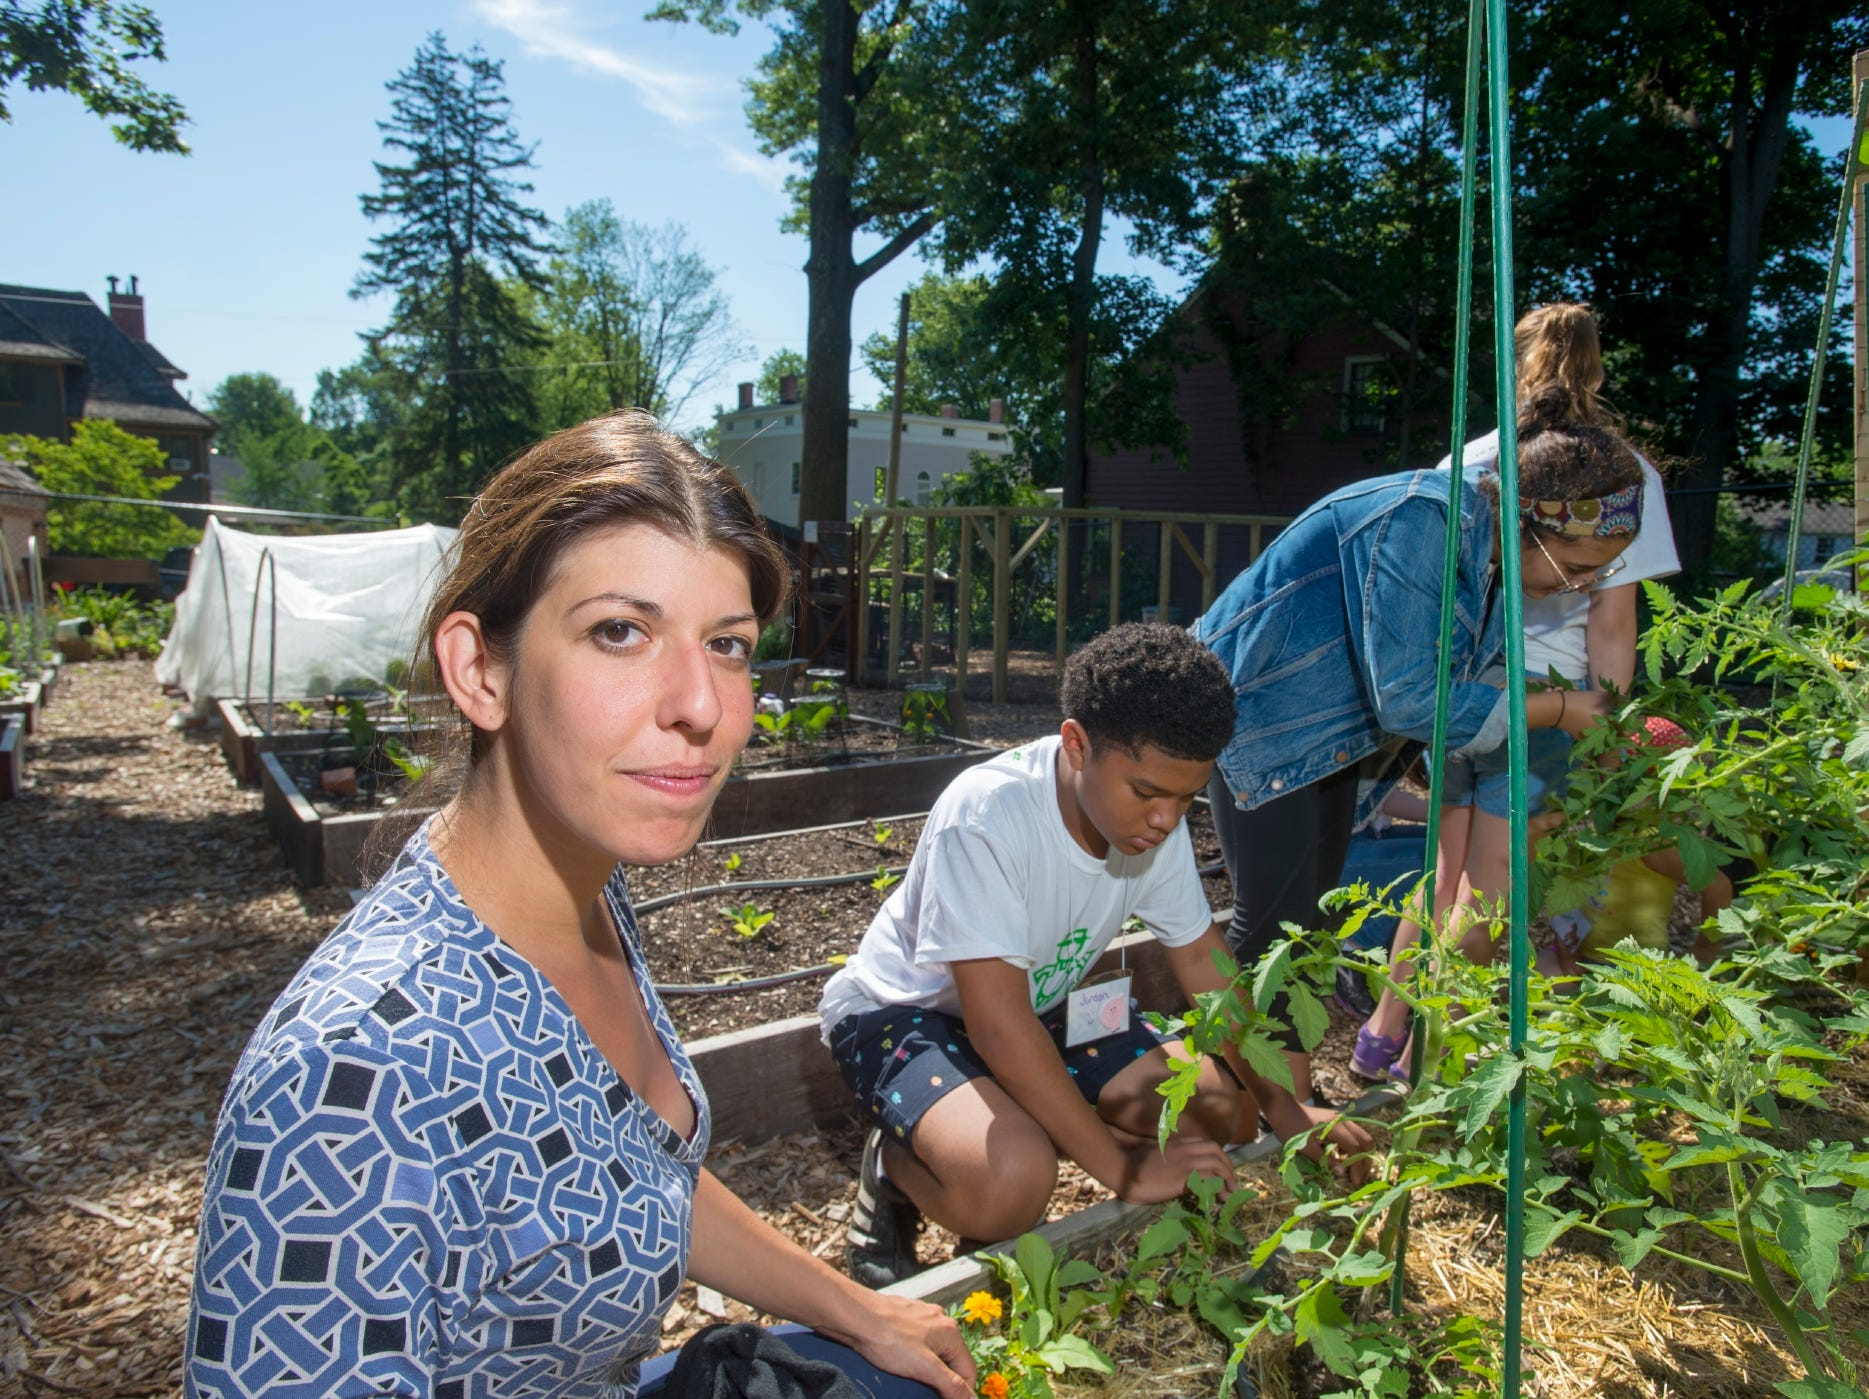 Rutgers extension services help run a 4-H summer camp at the Montclair Community Farm. Pictured in front is Marissa Staffen, a Rutgers graduate and 4-H Essex County Agent.